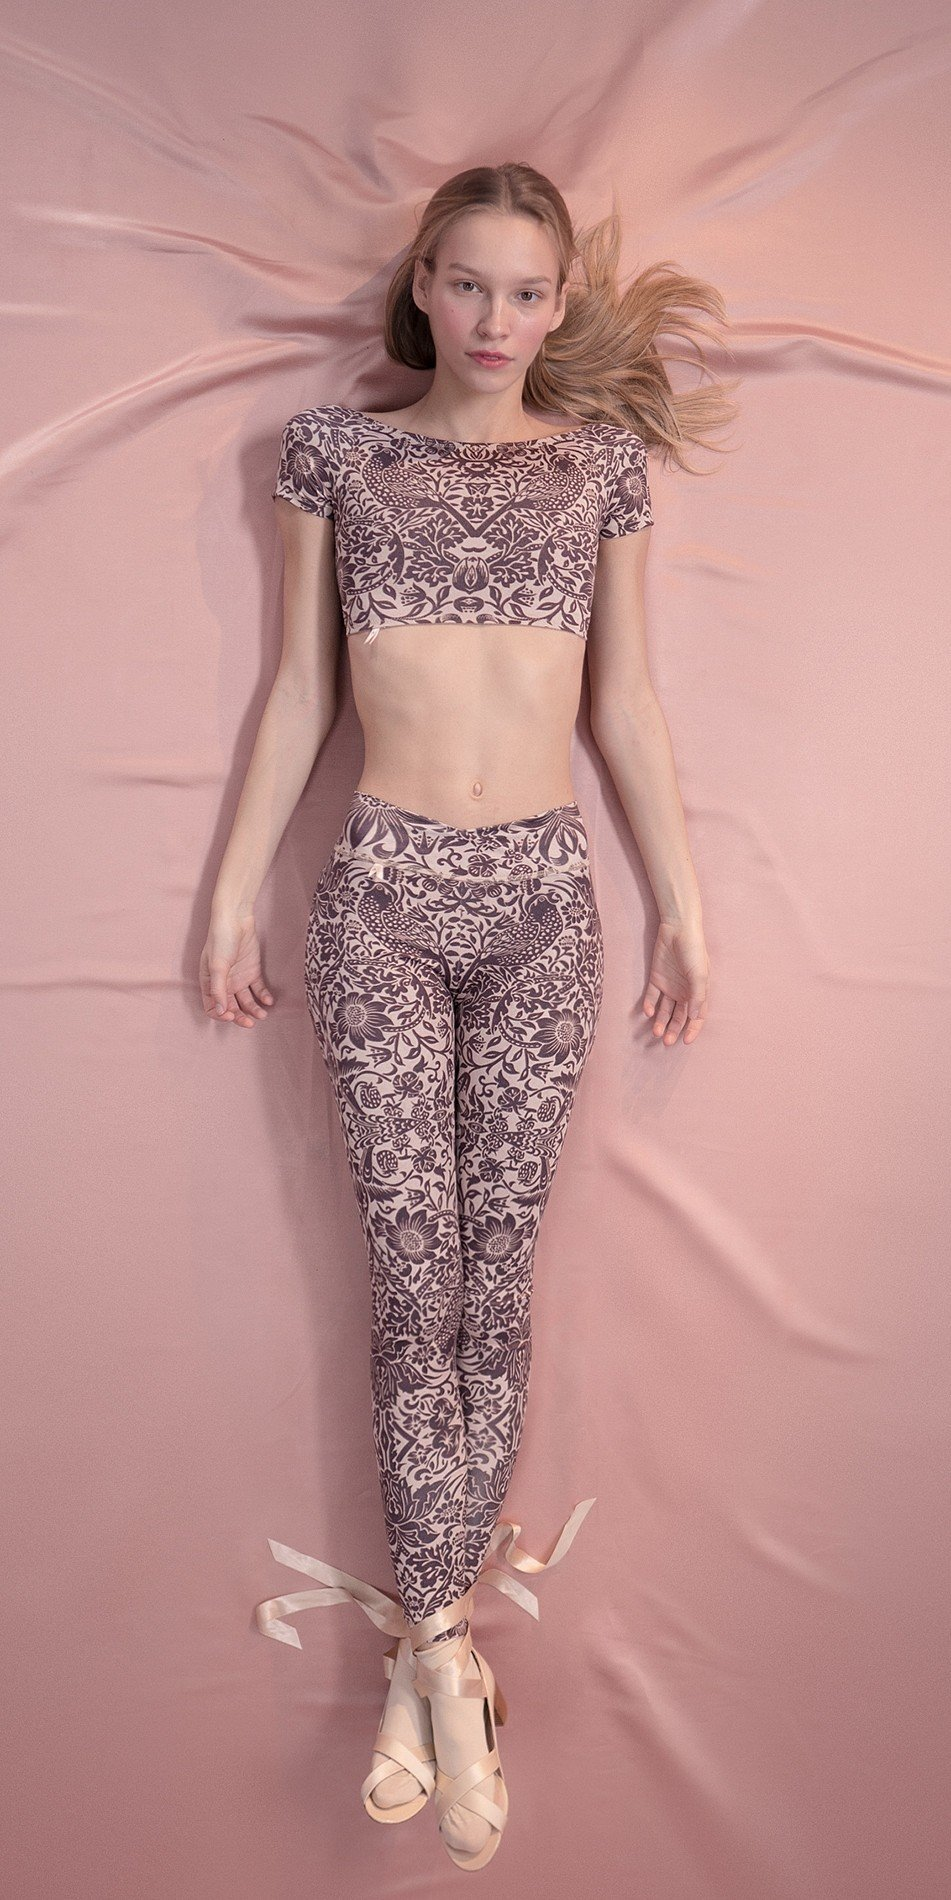 PRE20RAPHAELITES low20back20crop20top20with20short20sleeves strawberry20thief 6 r 2